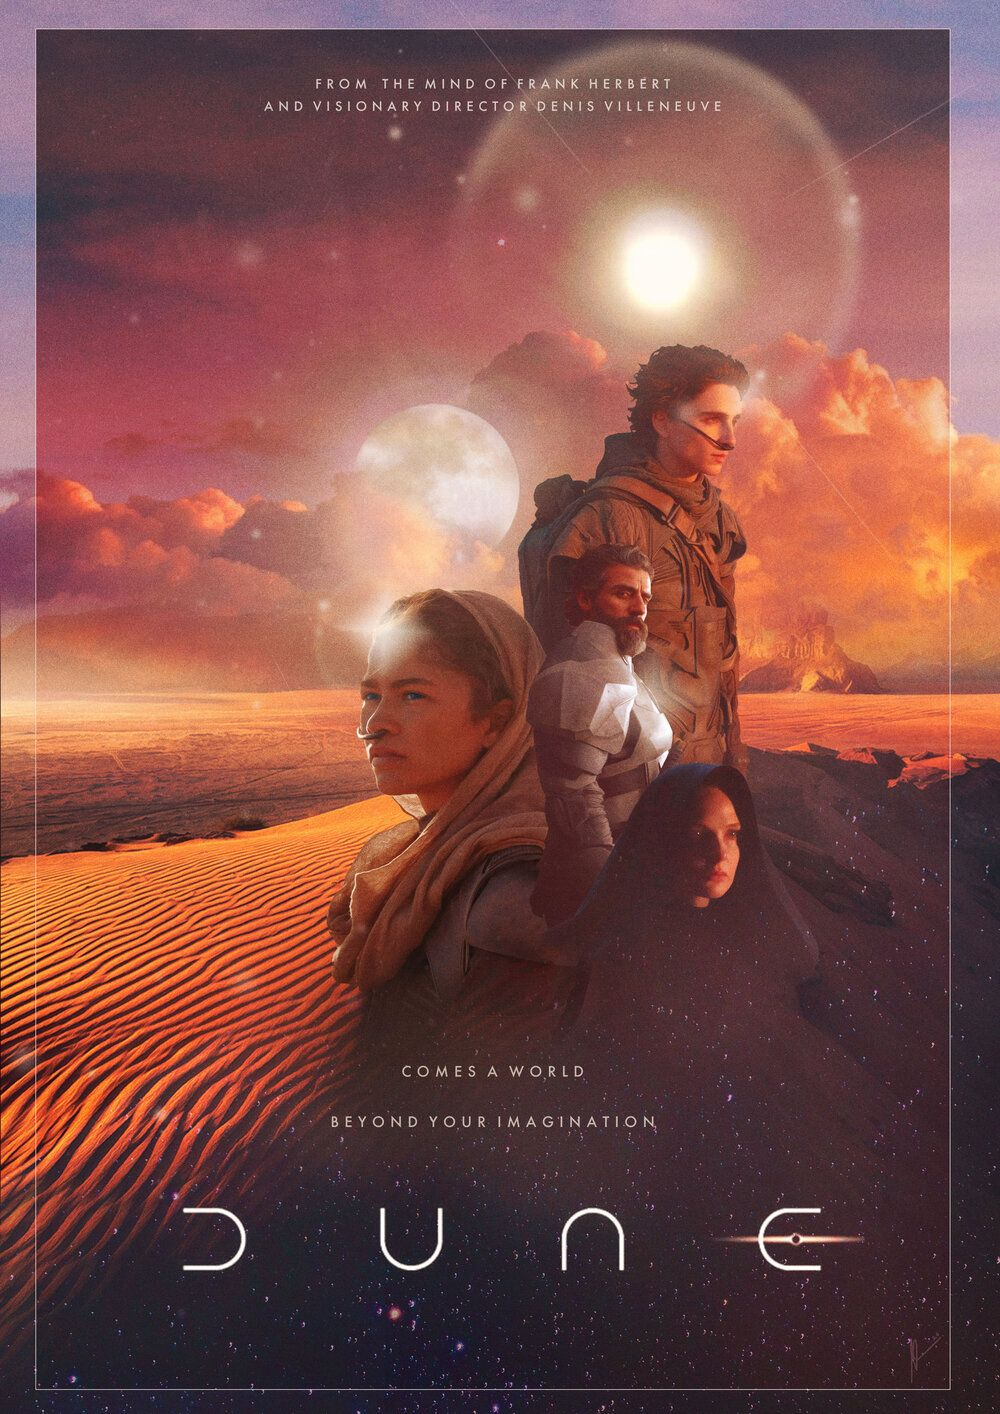 This Fan Made Dune Poster Dazzles The Eyes Nerdist Dune Dune Film Movie Posters